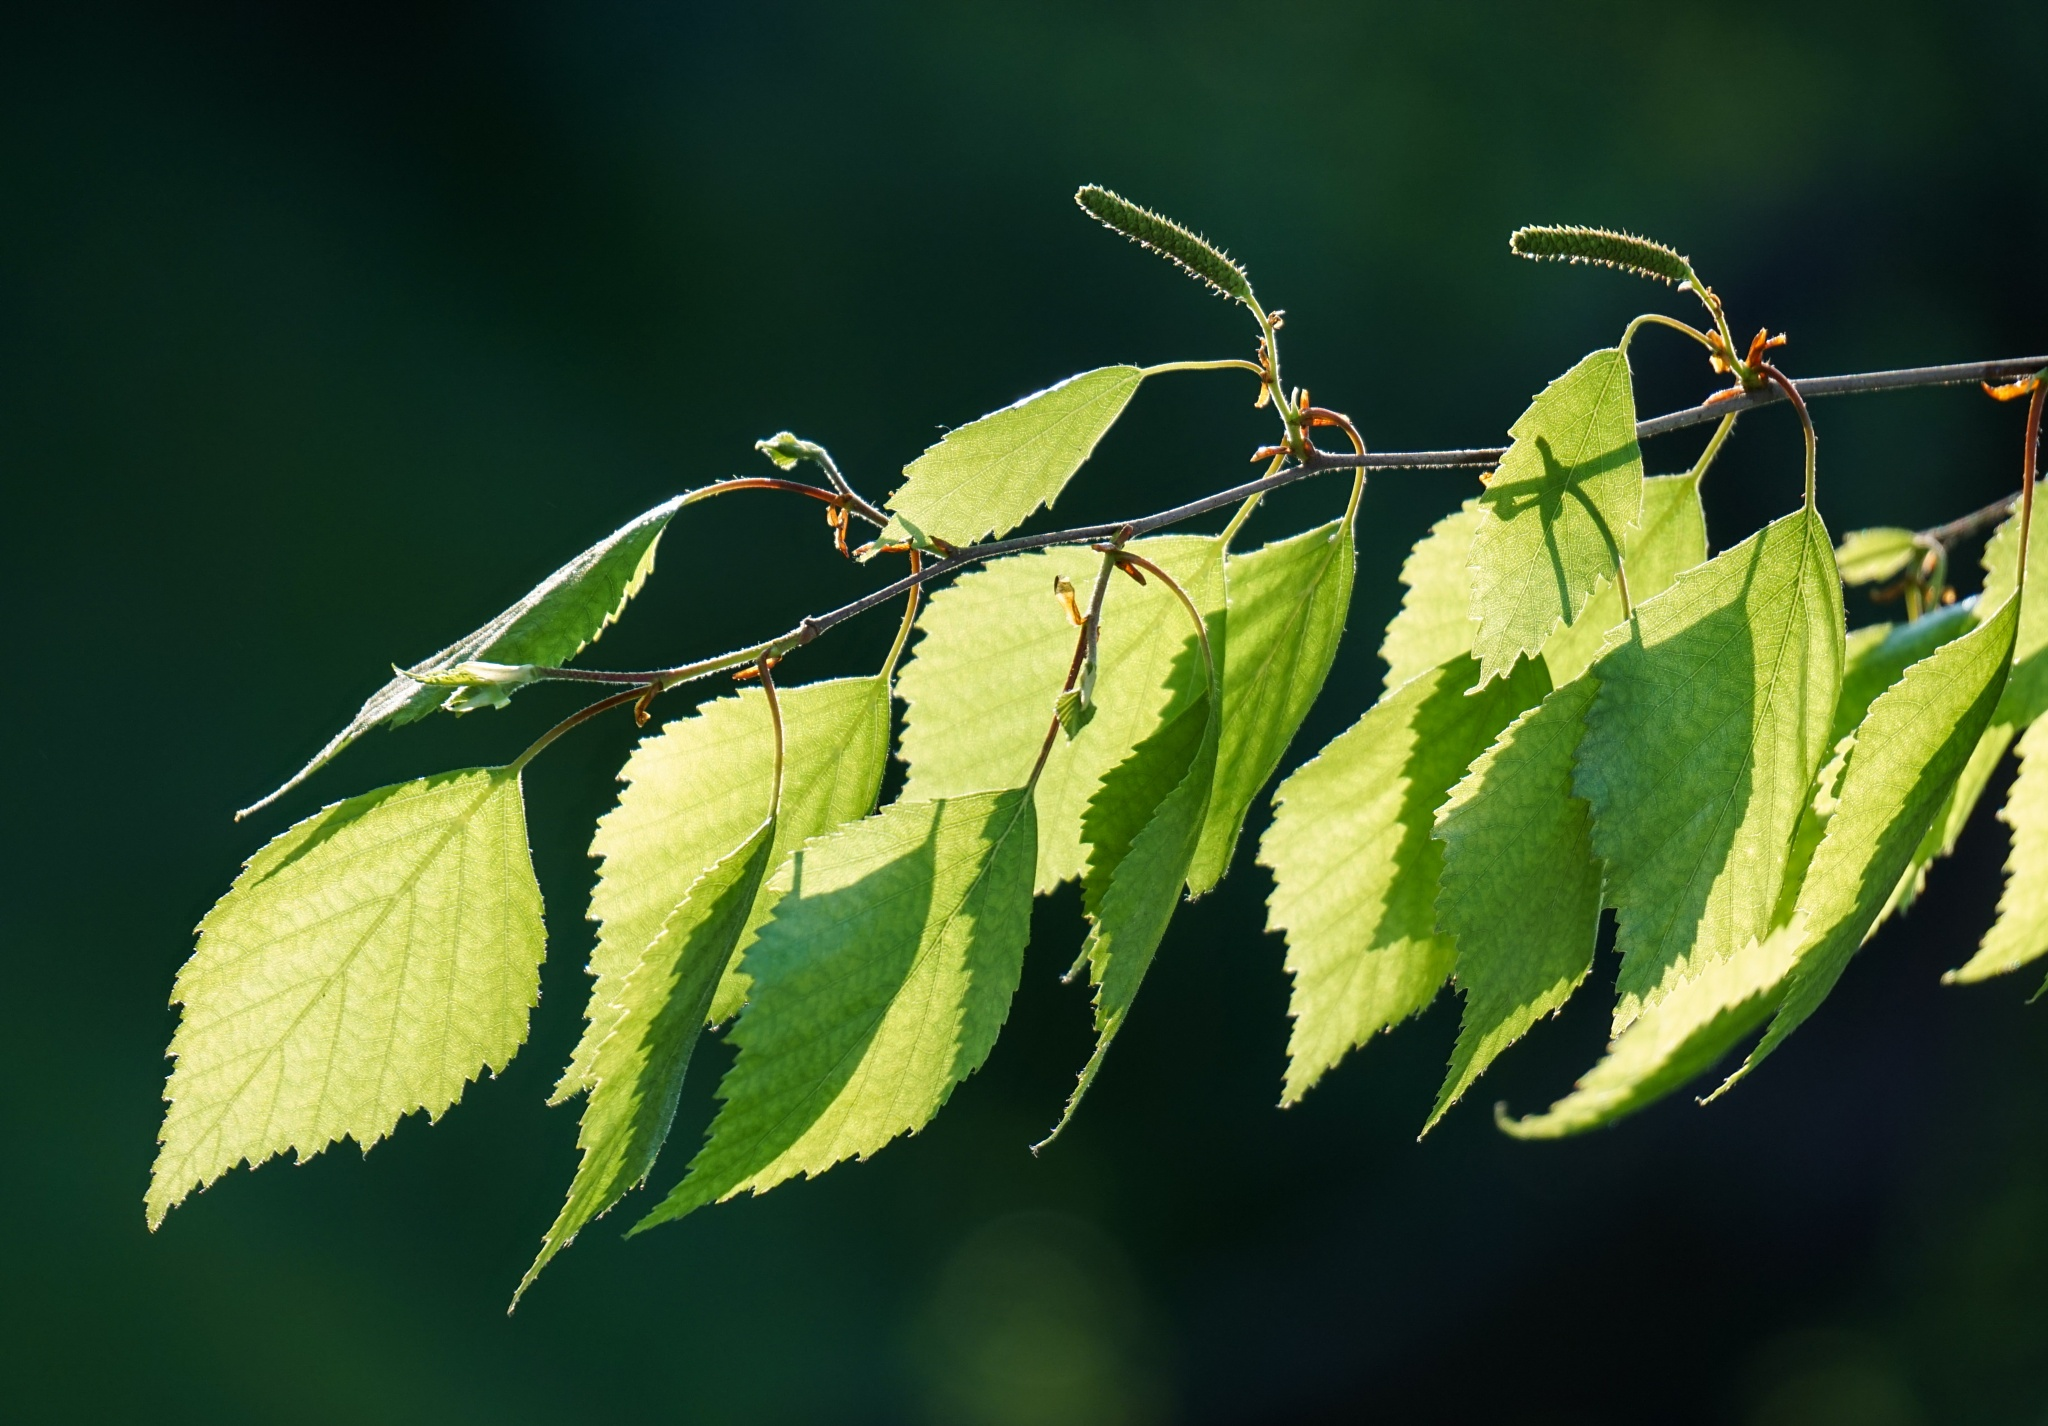 Green leaves in the sunlight  by anmayorov